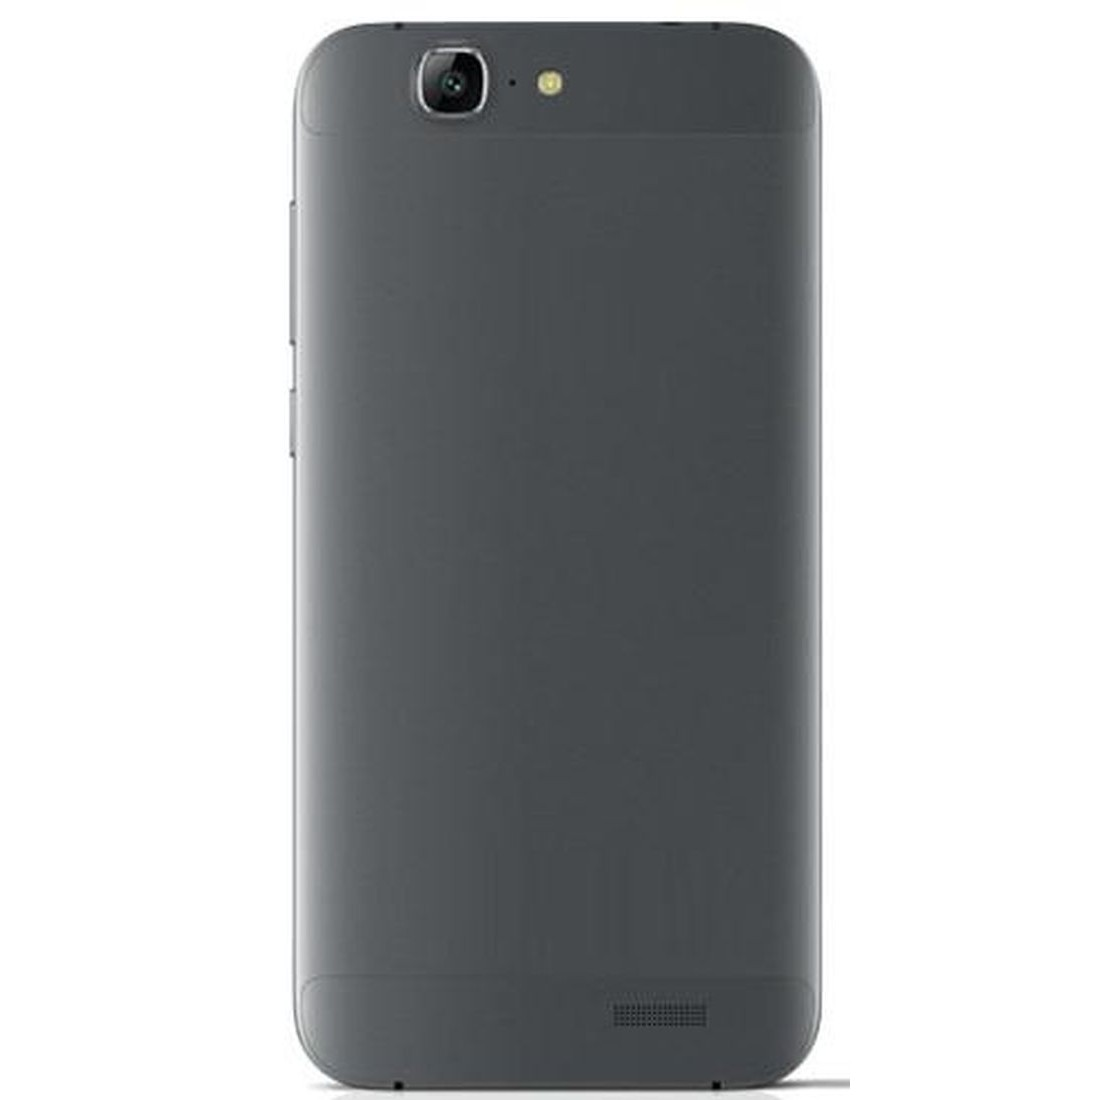 lowest price 076f9 5de60 Back Panel Cover for Huawei Ascend G7-L01 - Black